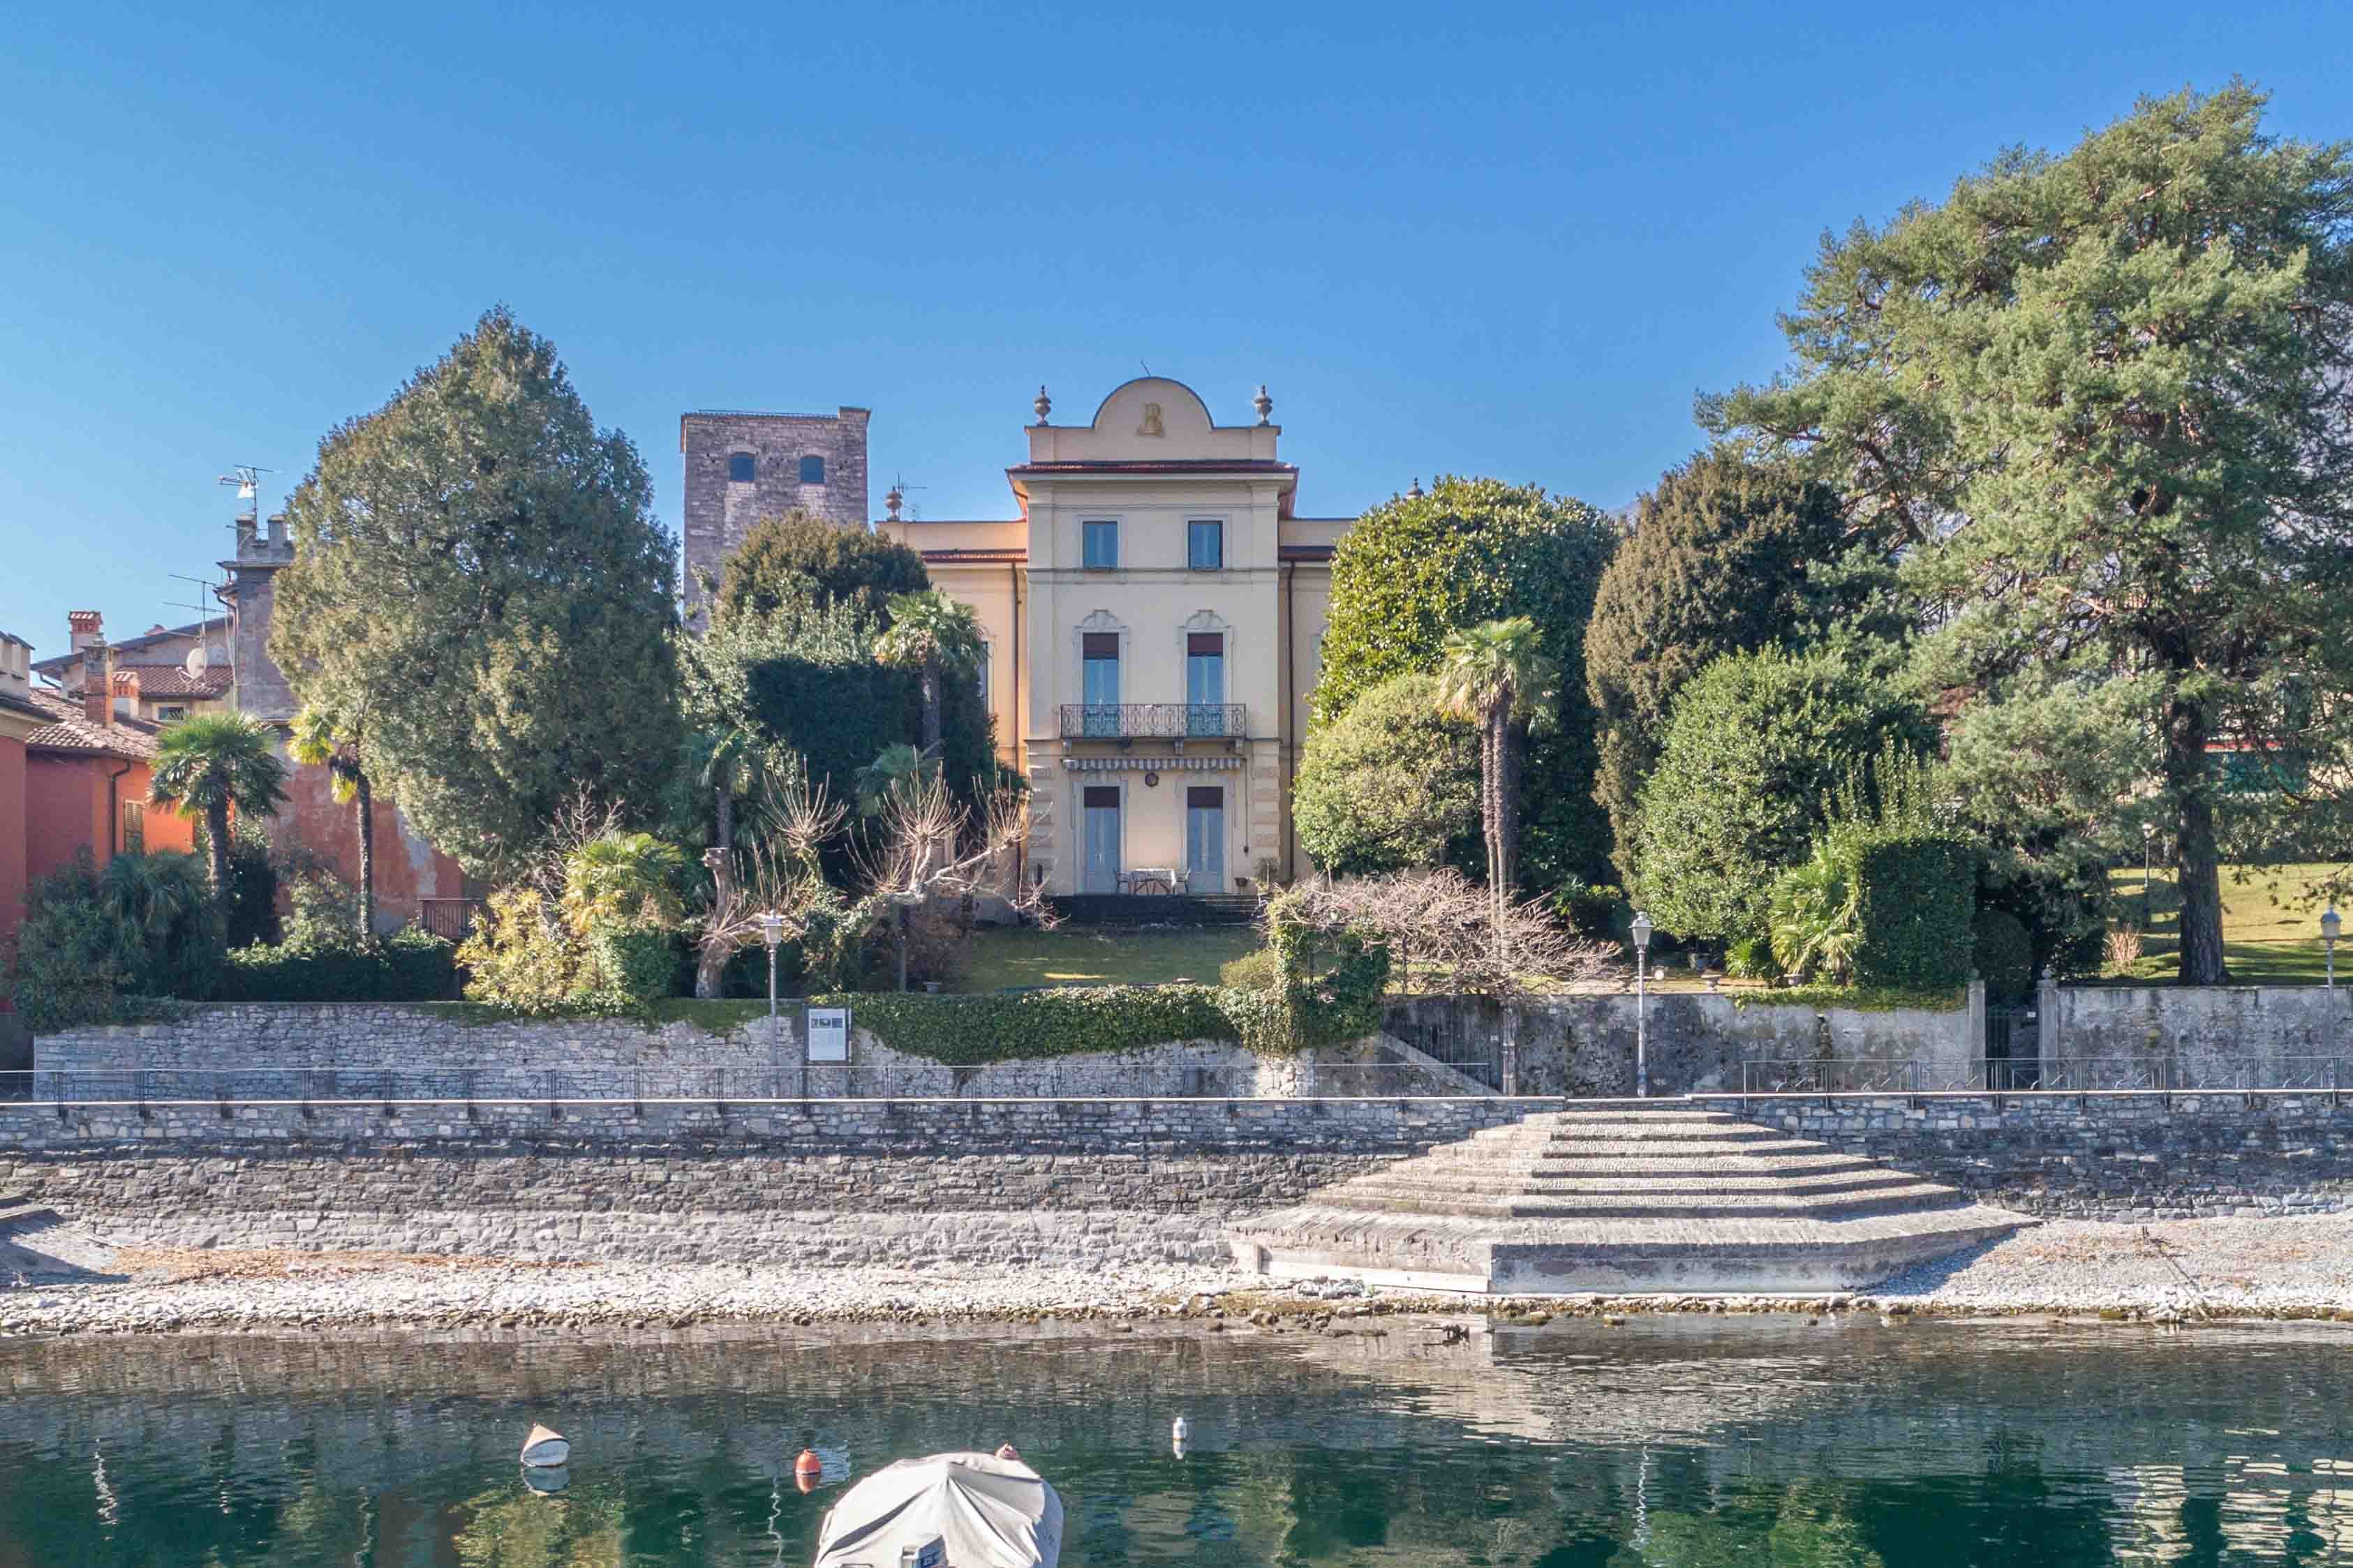 Lago di Como & Lago Maggiore luxury real estate: International buyers dominate the property market